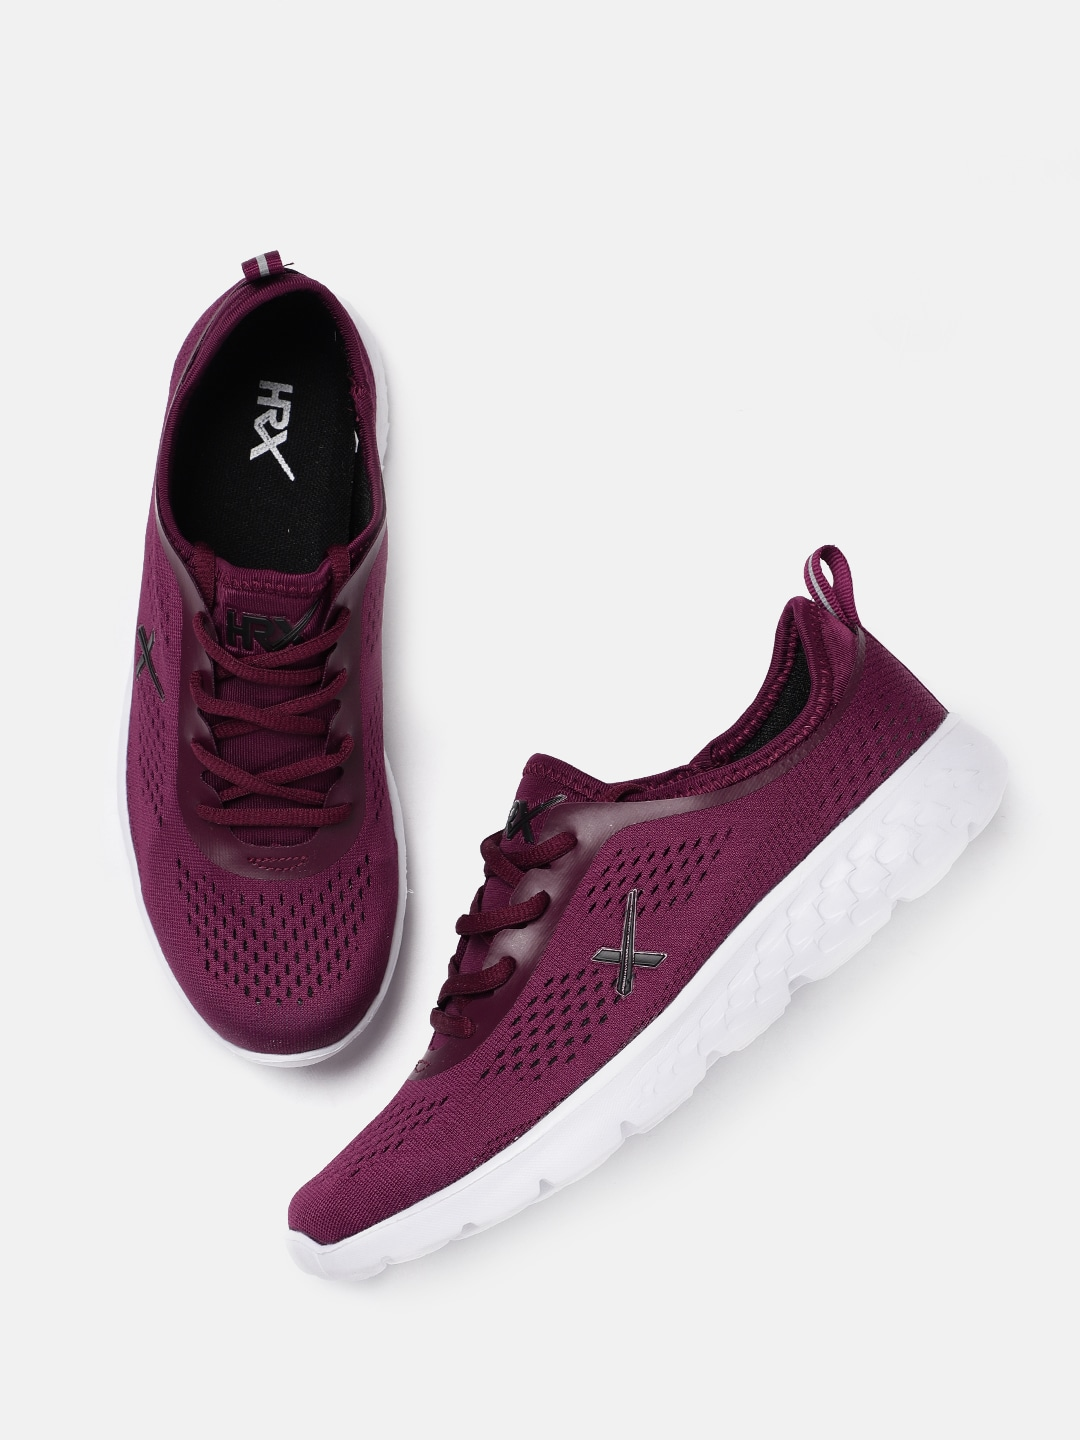 8a1ddc8d293 Sports Shoes for Women - Buy Women Sports Shoes Online